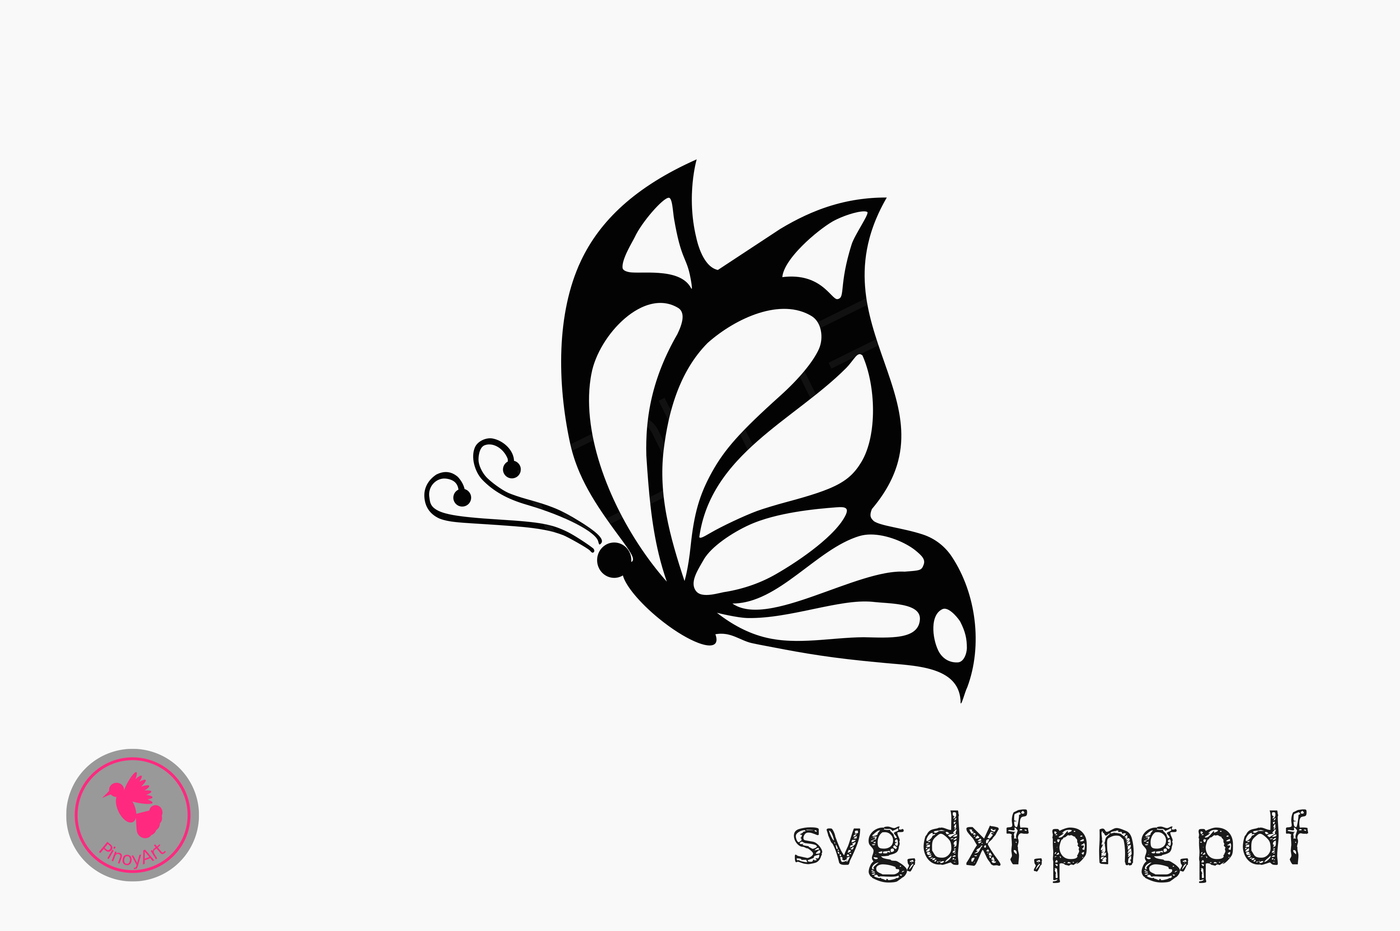 1400x931 Butterfly Svg,butterfly Dxf,butterfly Svg,butterfly,svg,dxf,png